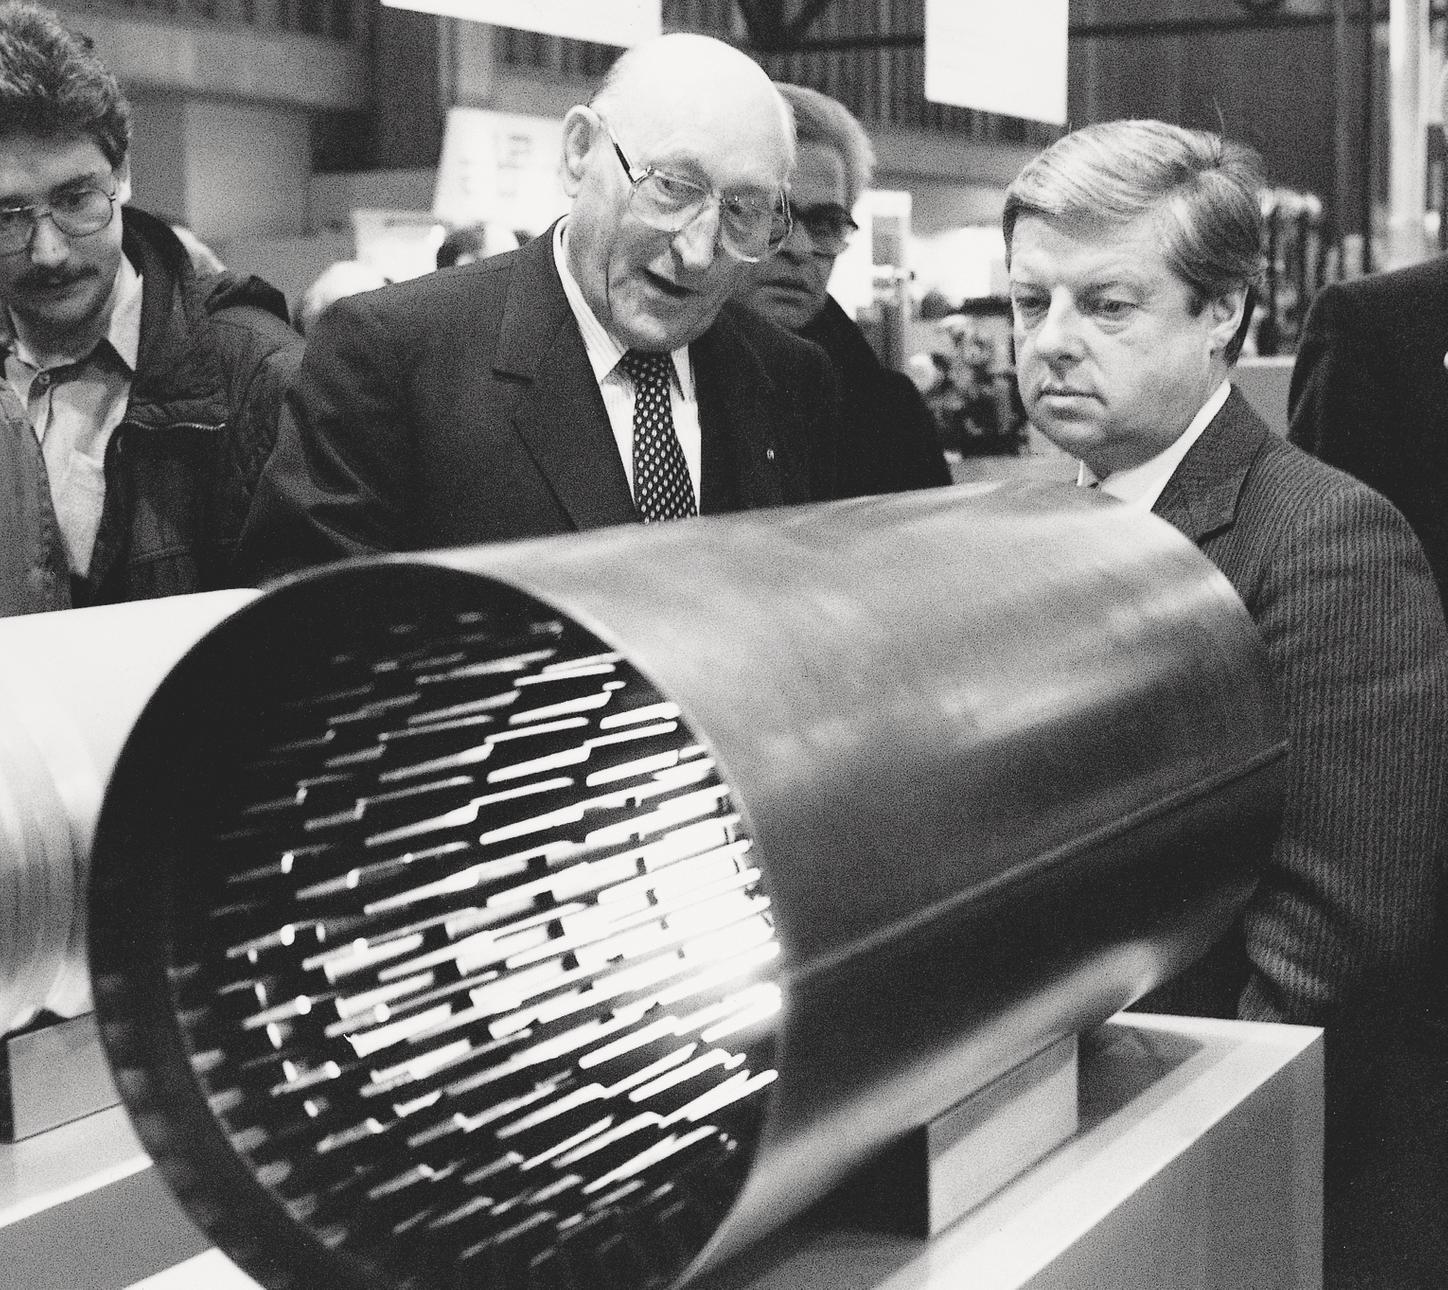 The picture shows Hans Viessmann and another person behind a biferral composite heating surface.